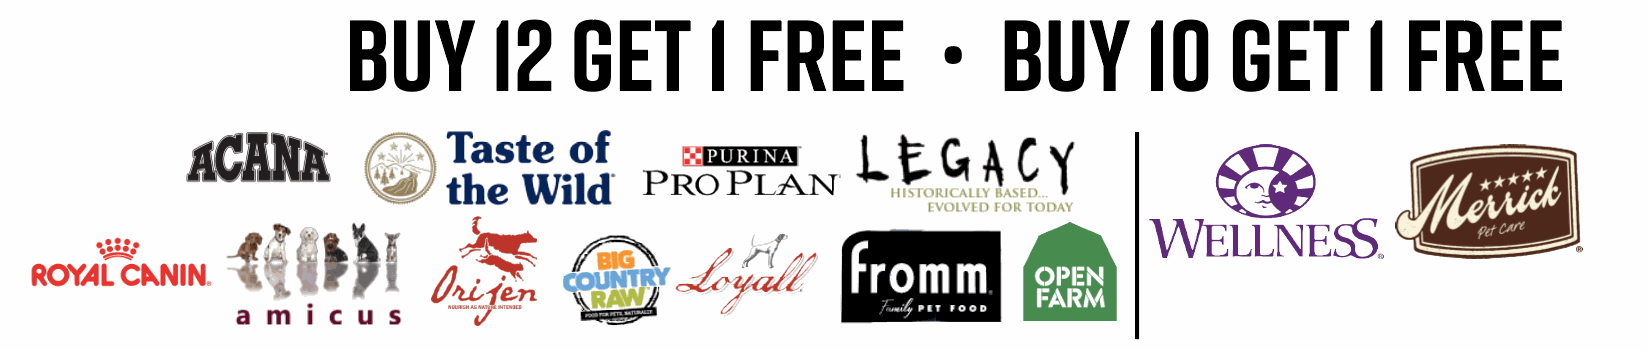 Image of brands with frequent buyer programs. Buy 12 Get 1 free: Big Country Raw, Fromm, Open Farm, Purina Proplan, Taste of The Wild, Legacy, Amicus, Orijen, Acana, Loyall. Brands with buy 10 get 1 free: Wellness and Merrick.